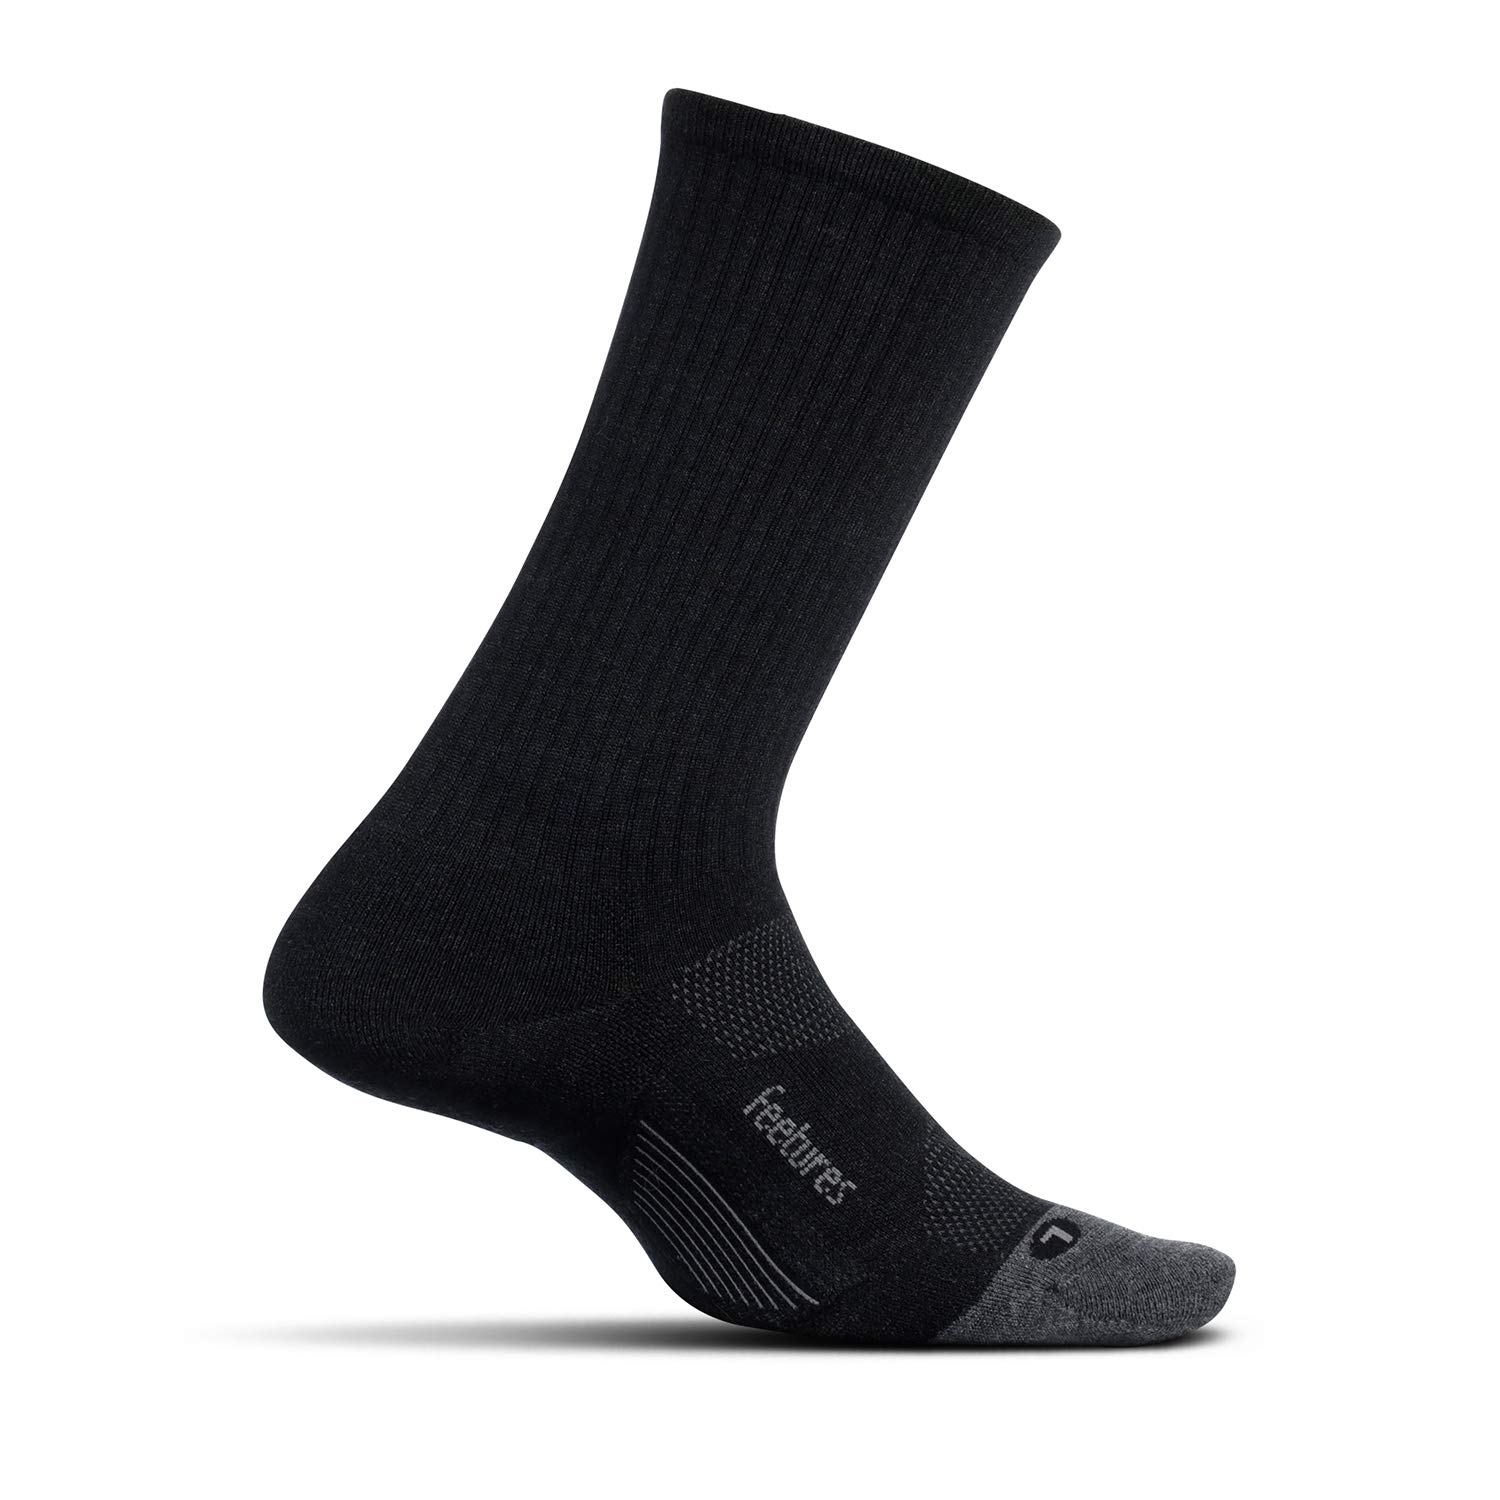 Feetures Unisex Merino 10 Cushion Crew Sock (Small, Charcoal)